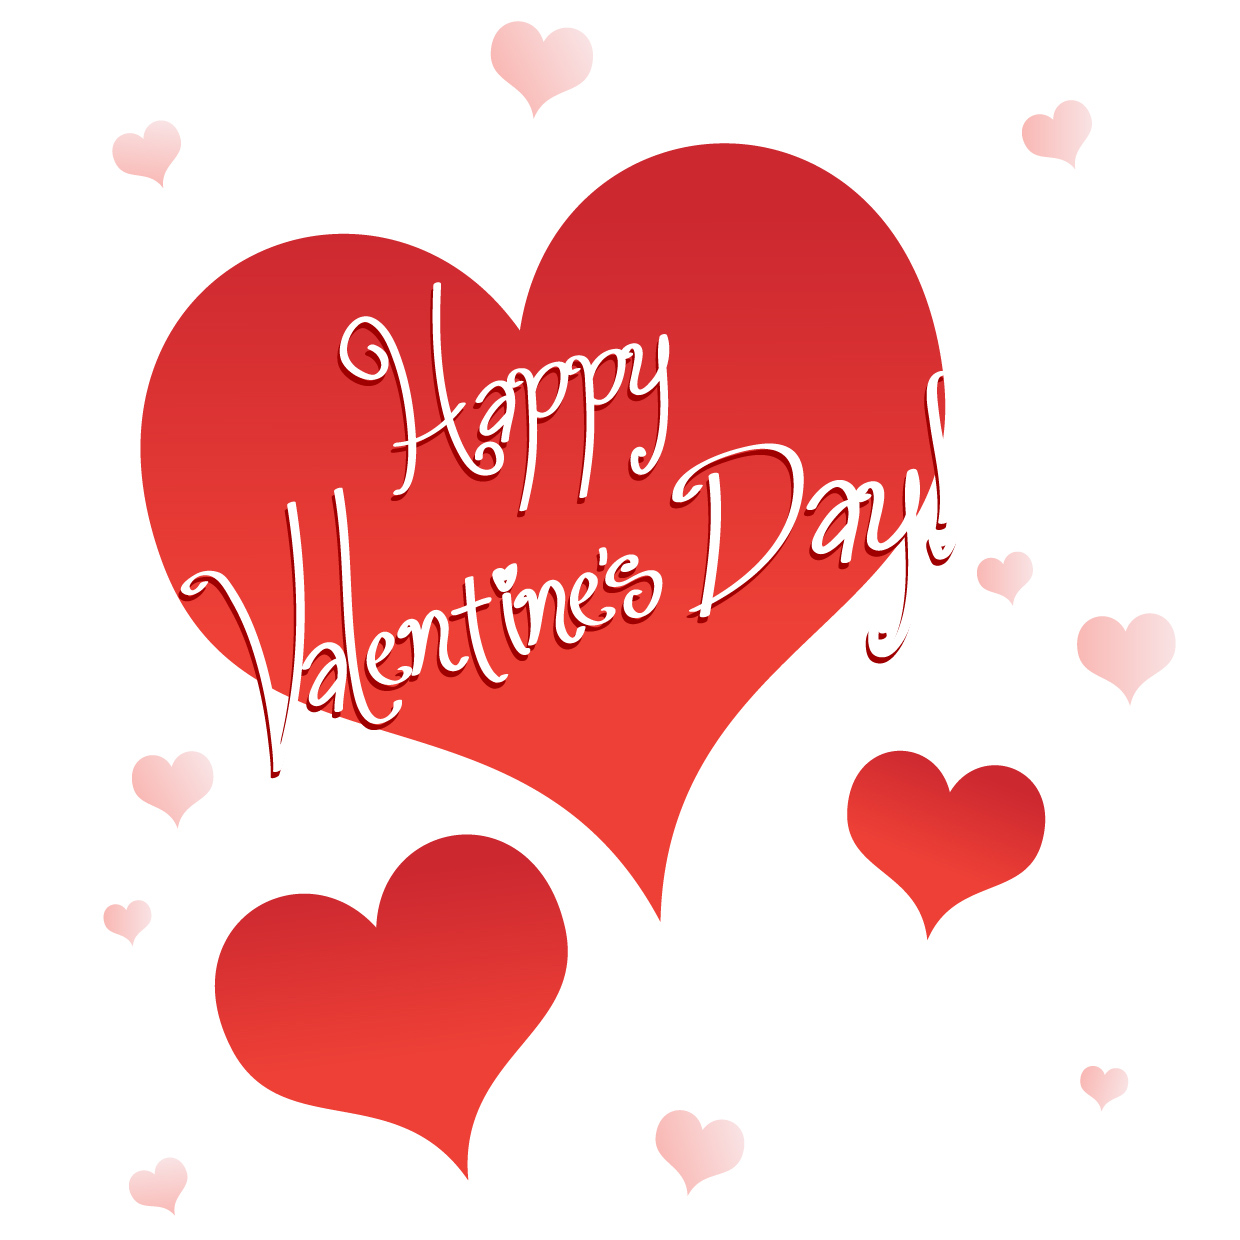 February Valentines Day Clip Art Free Cl-February valentines day clip art free clip art free clip art-0